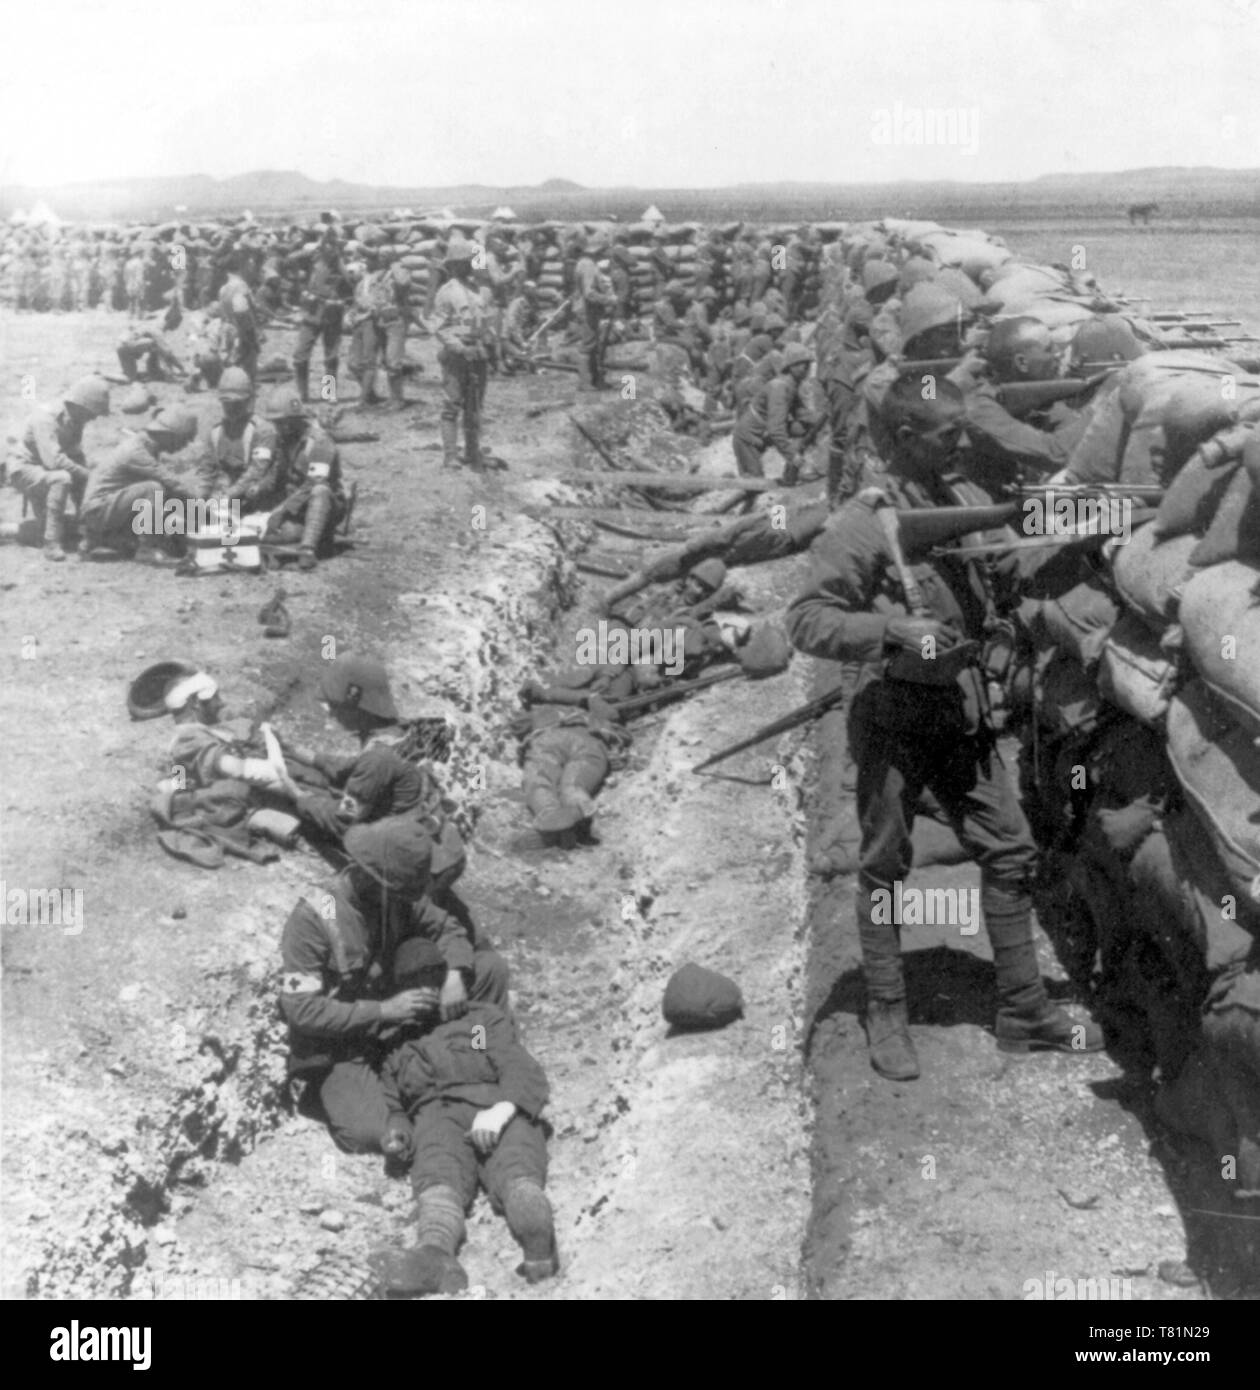 Boer War, Royal Munster Fusiliers Redoubt, 1900 - Stock Image